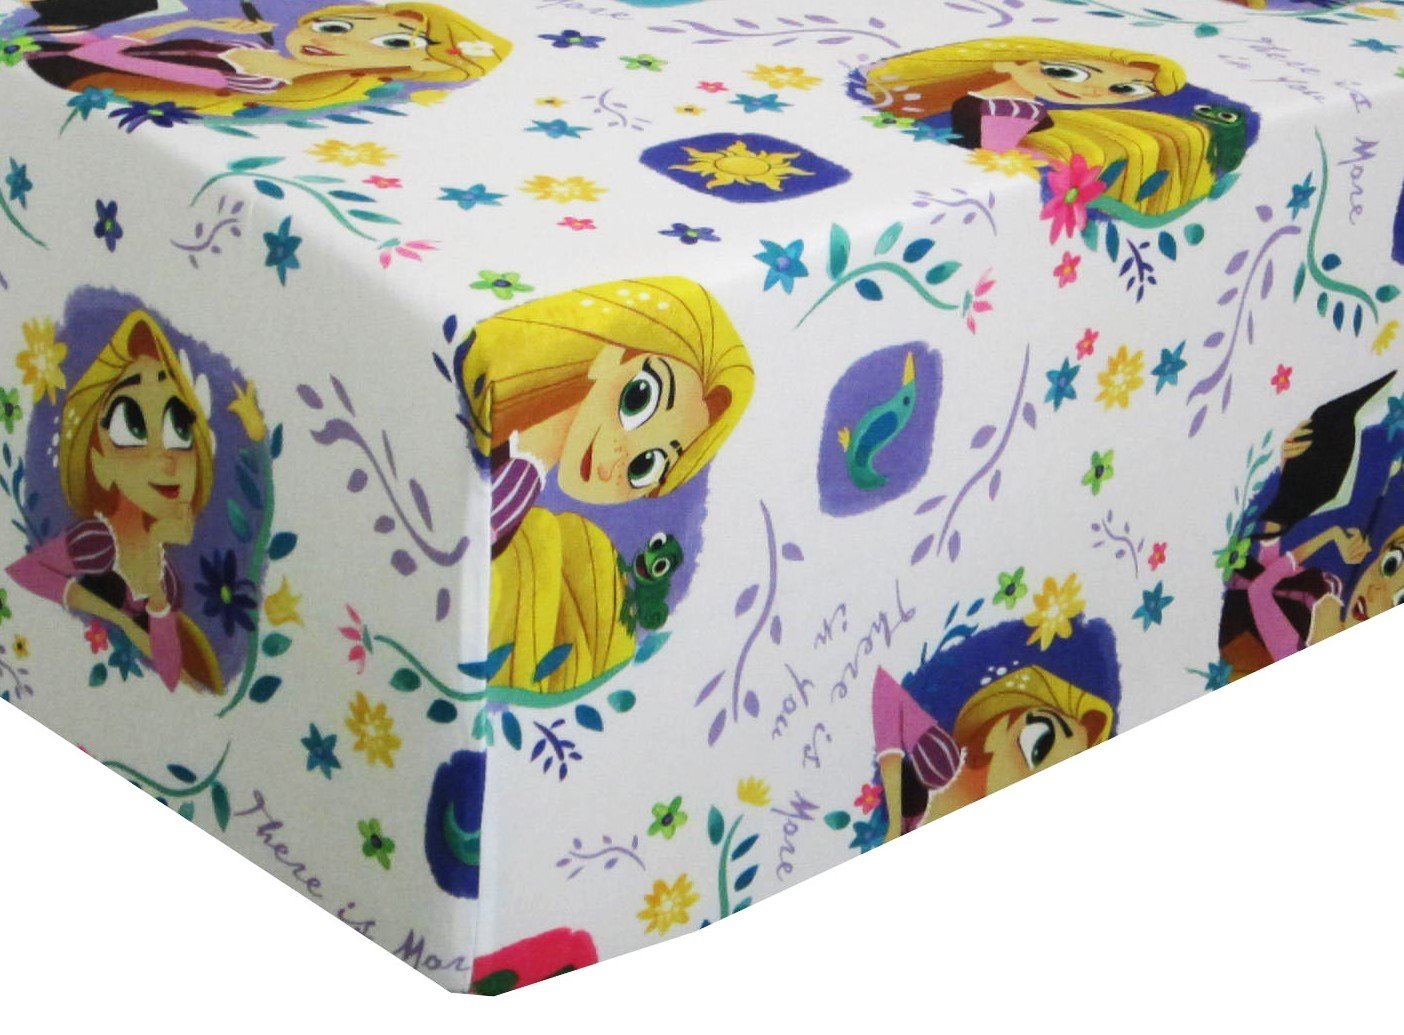 Tangled Dream Adventure 100% Polyester (Fitted Sheet ONLY) Size Twin Girls Kids Bedding Franco Manufacturing Co. Inc.